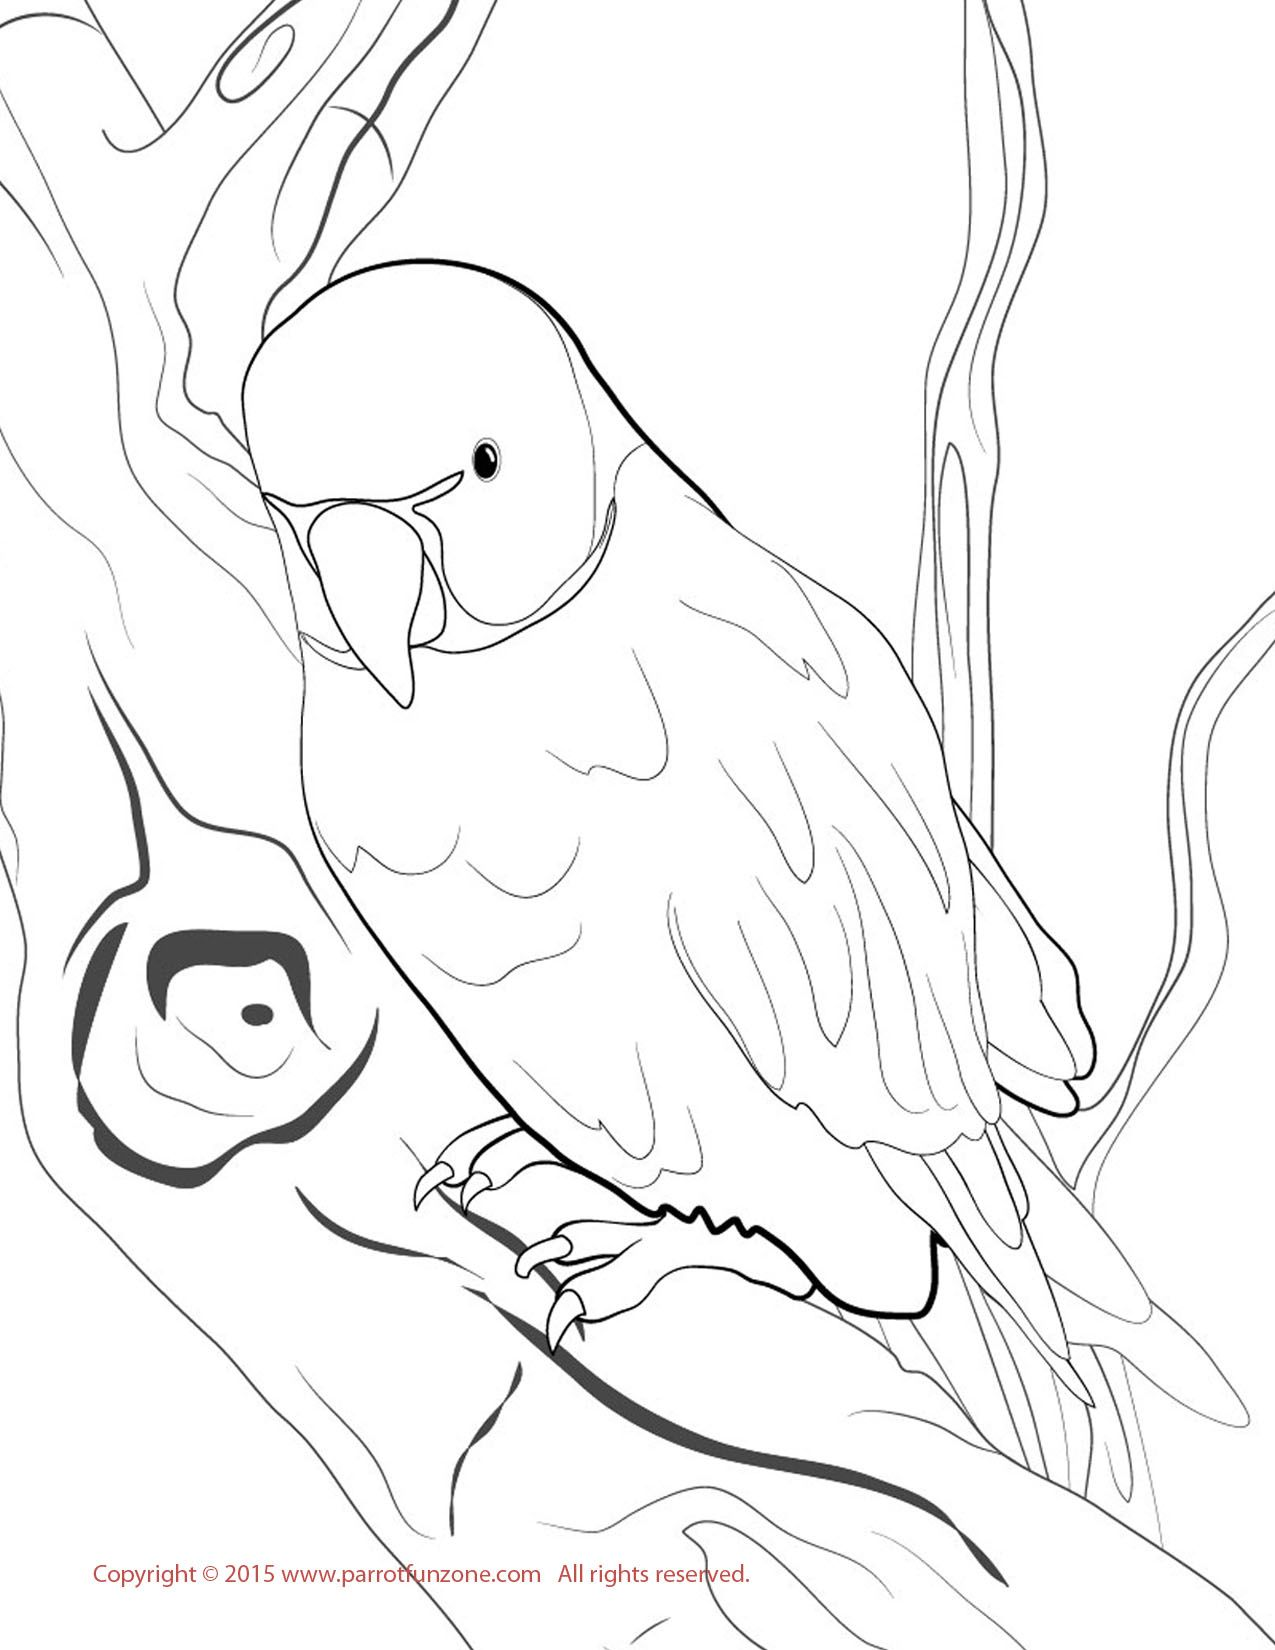 Ring Necked Parakeet Coloring Page Ring Necked Parakeet Coloring Pages Parakeet